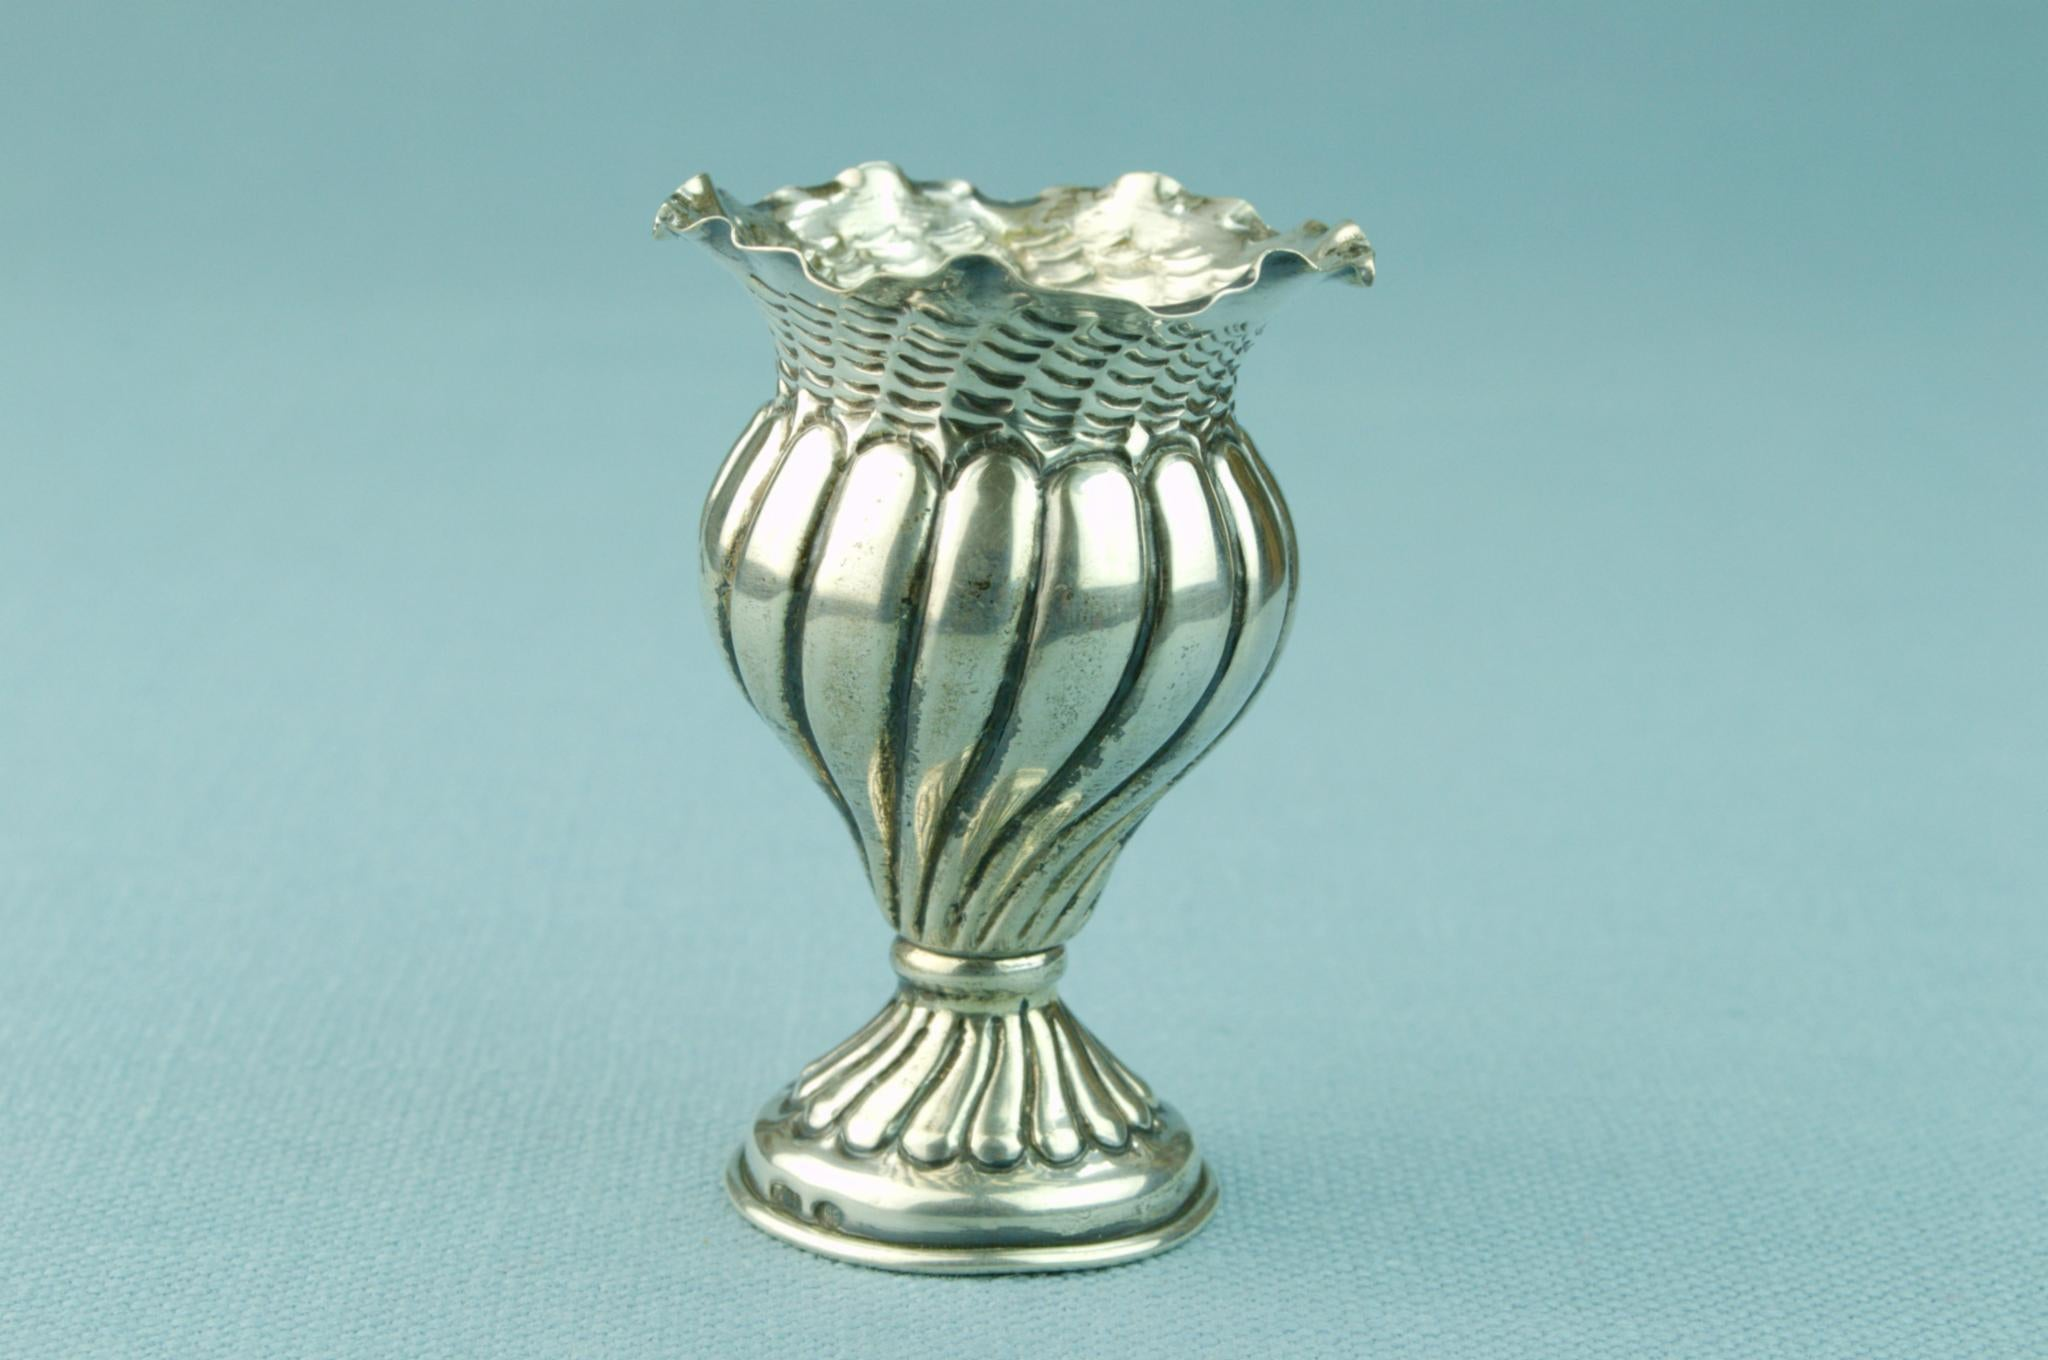 Small Silver Vase for a Single Bud